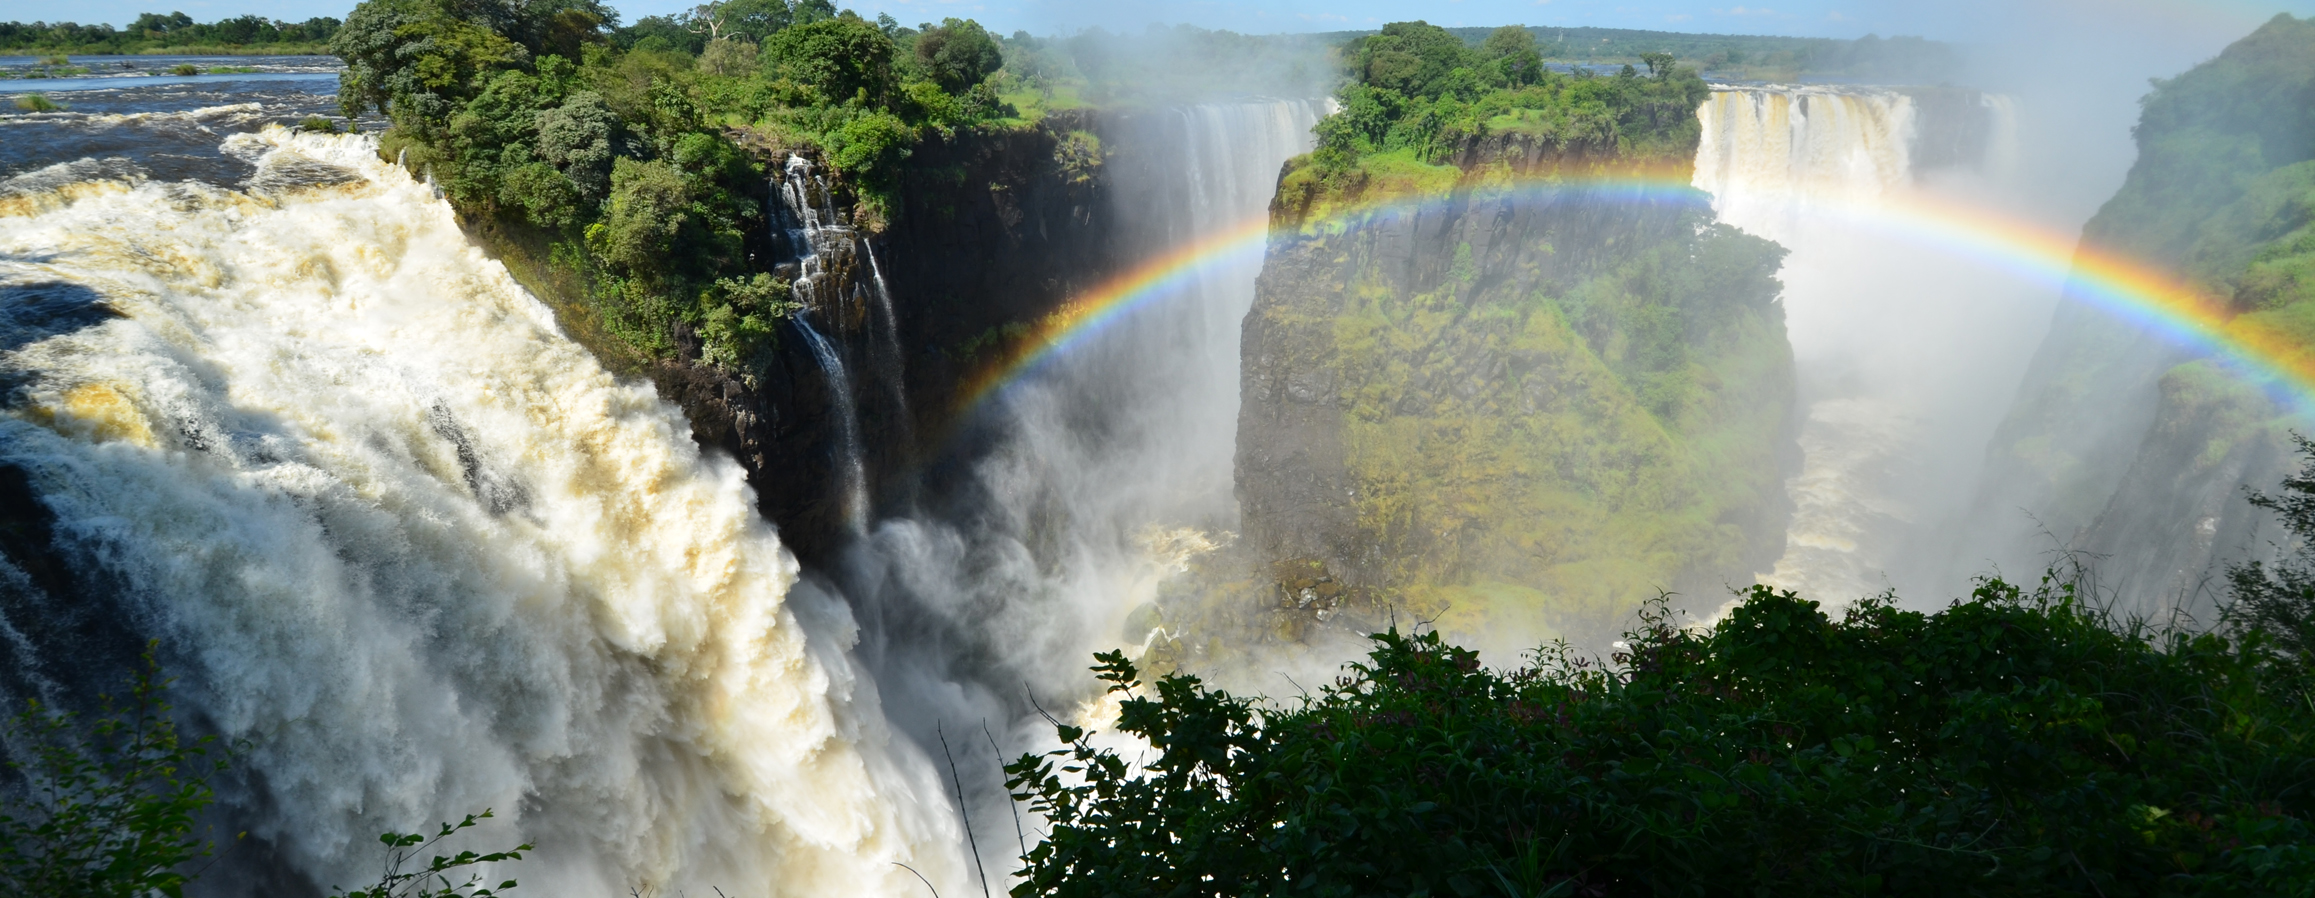 The Devils Cataract - Victoria Falls